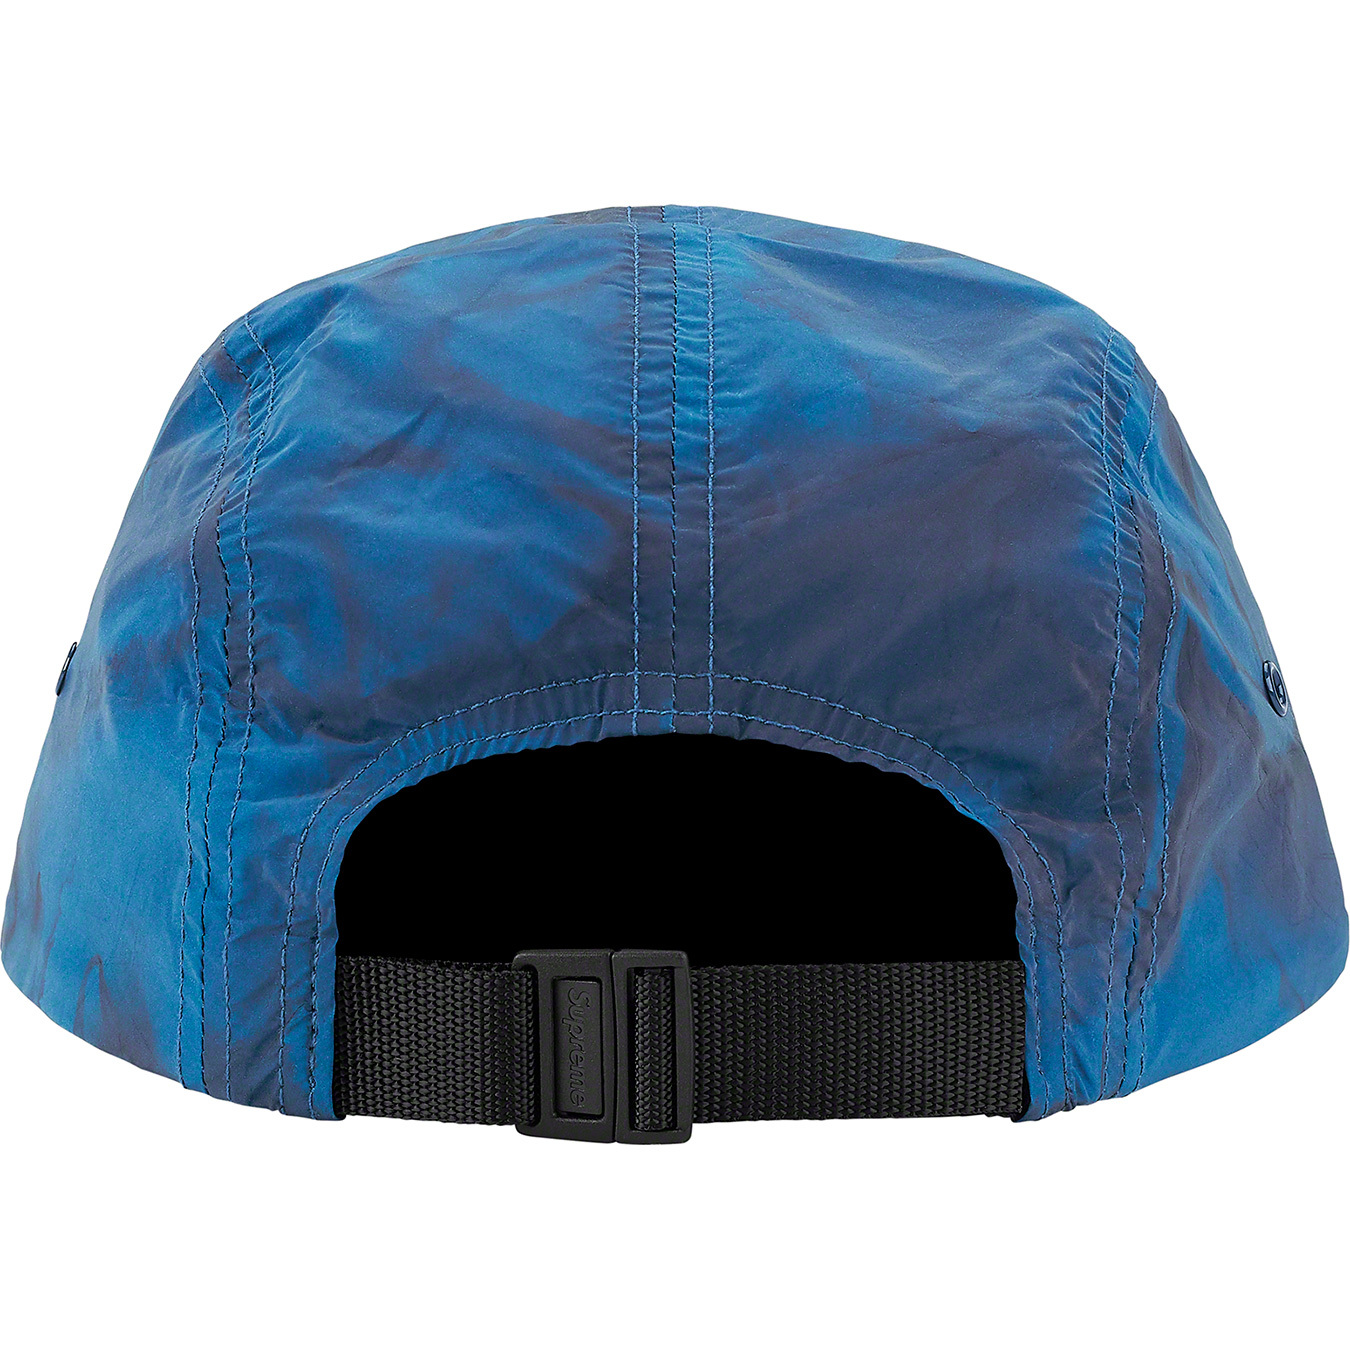 supreme-21ss-spring-summer-reflective-dyed-camp-cap